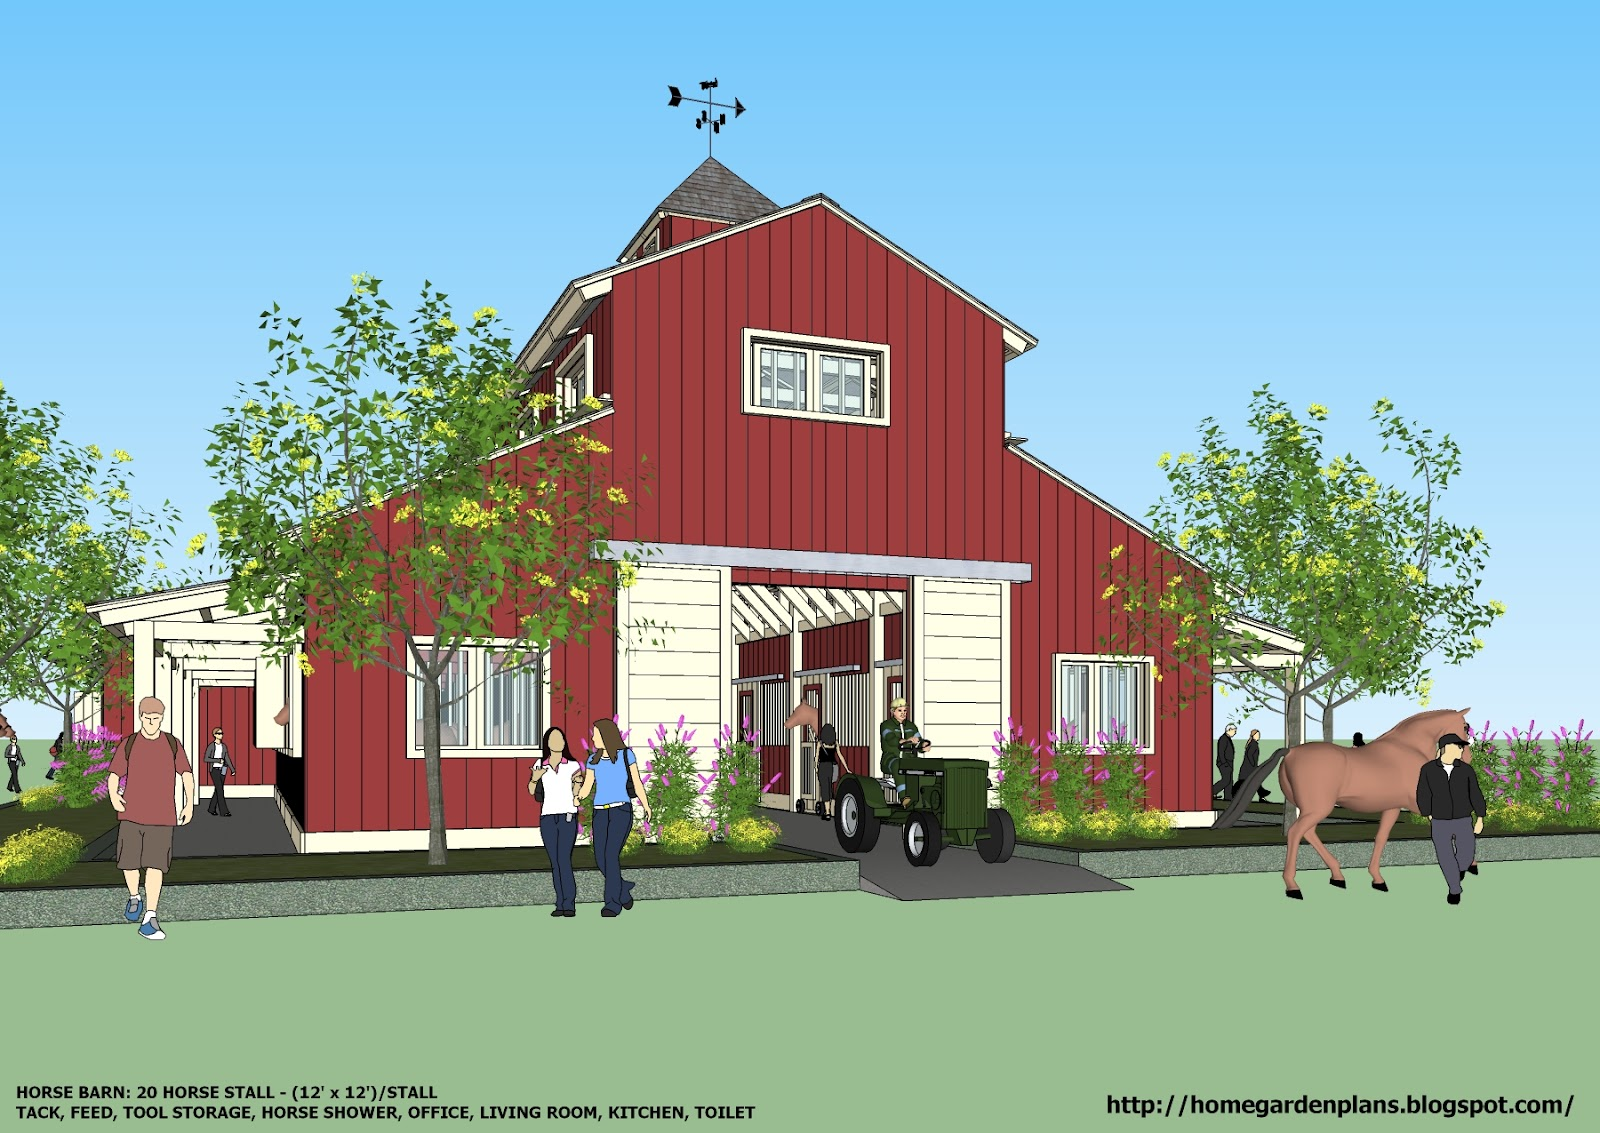 Home garden plans b20h large horse barn for 20 horse Barn designs